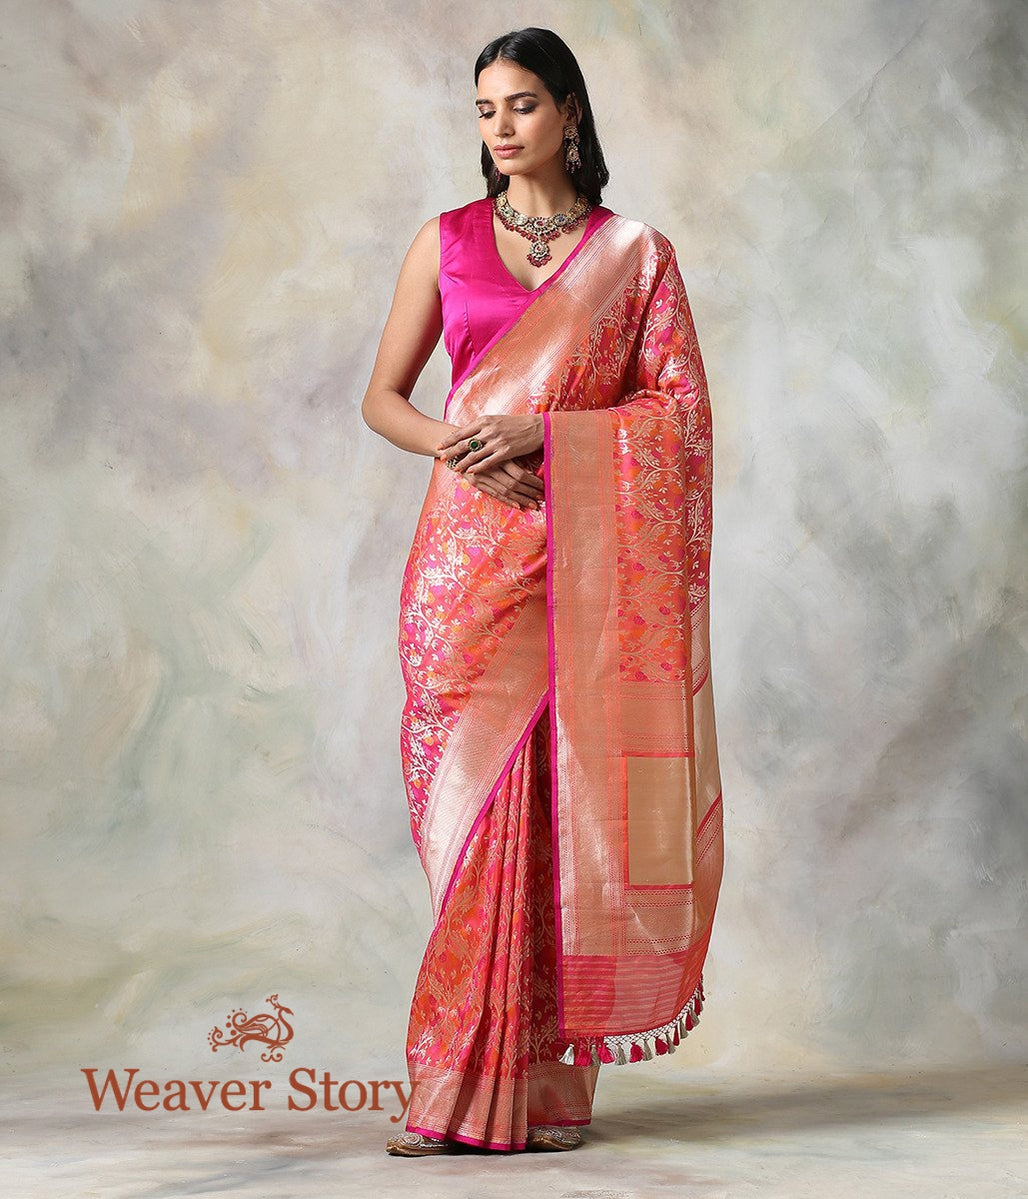 Handwoven Pink Peach Floral Cutwork Jaal Saree with Meenakari